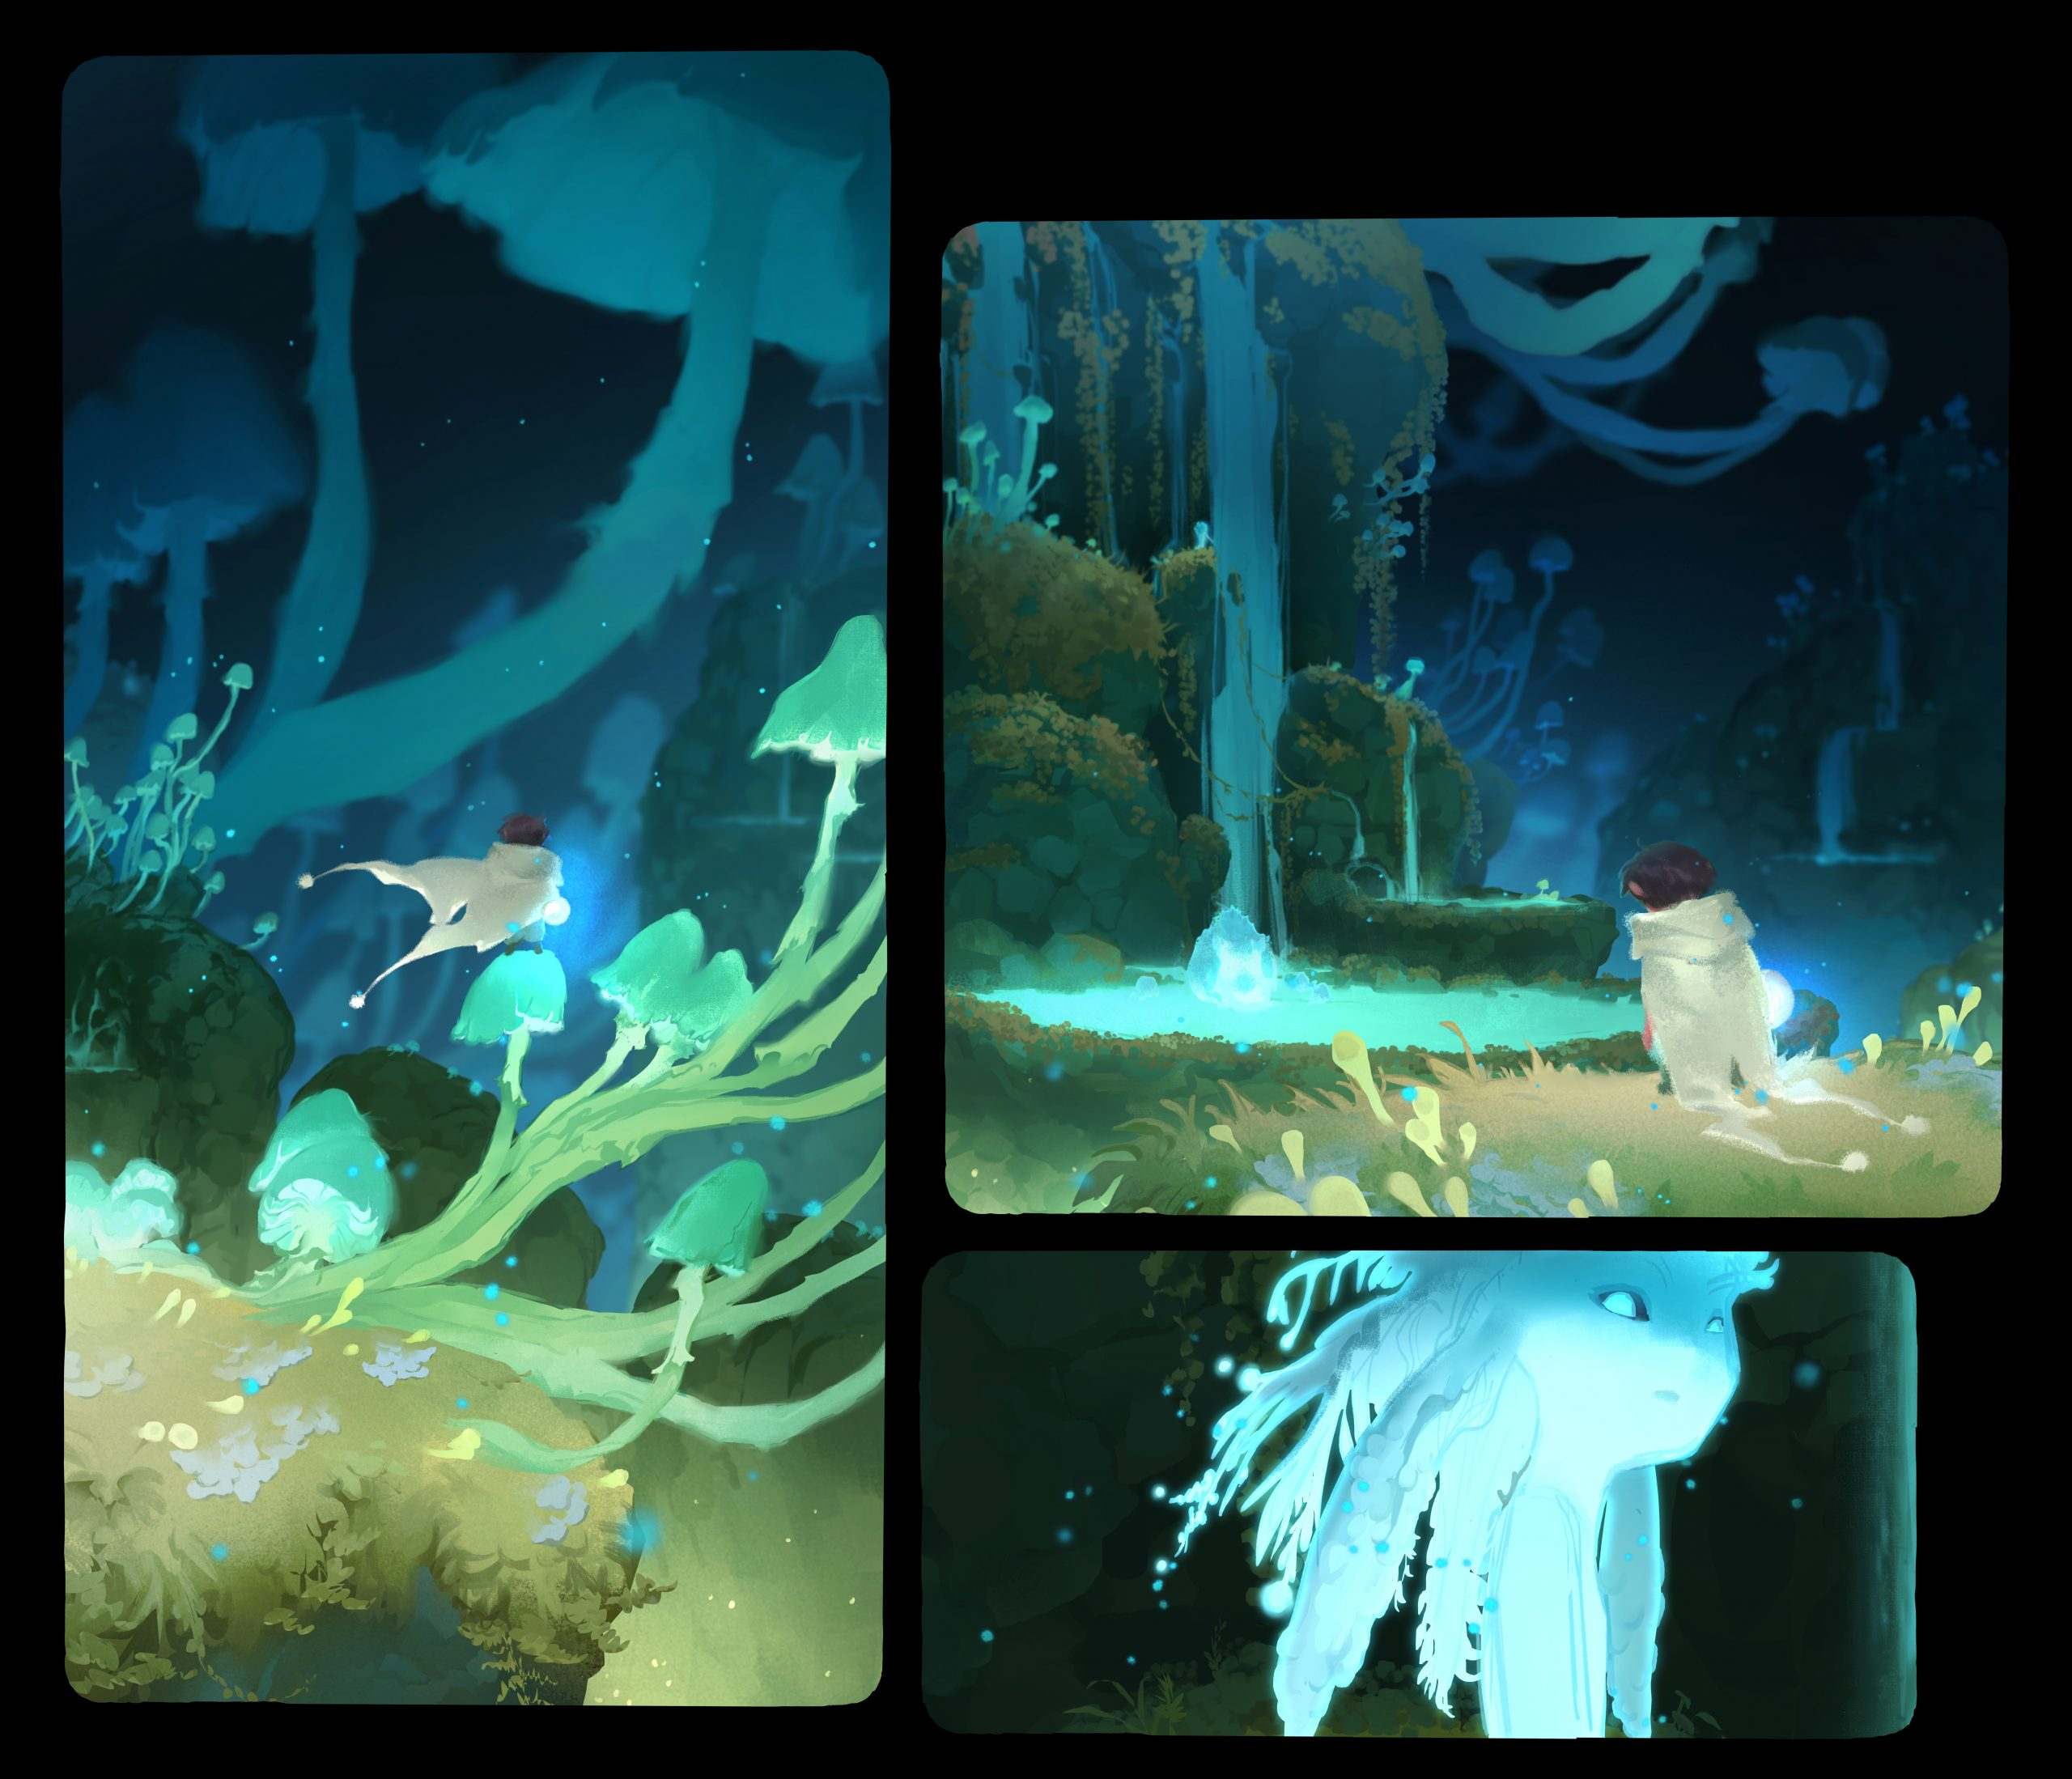 Three panels from Iris's painting, showing a young boy approach a pond spirit type creature